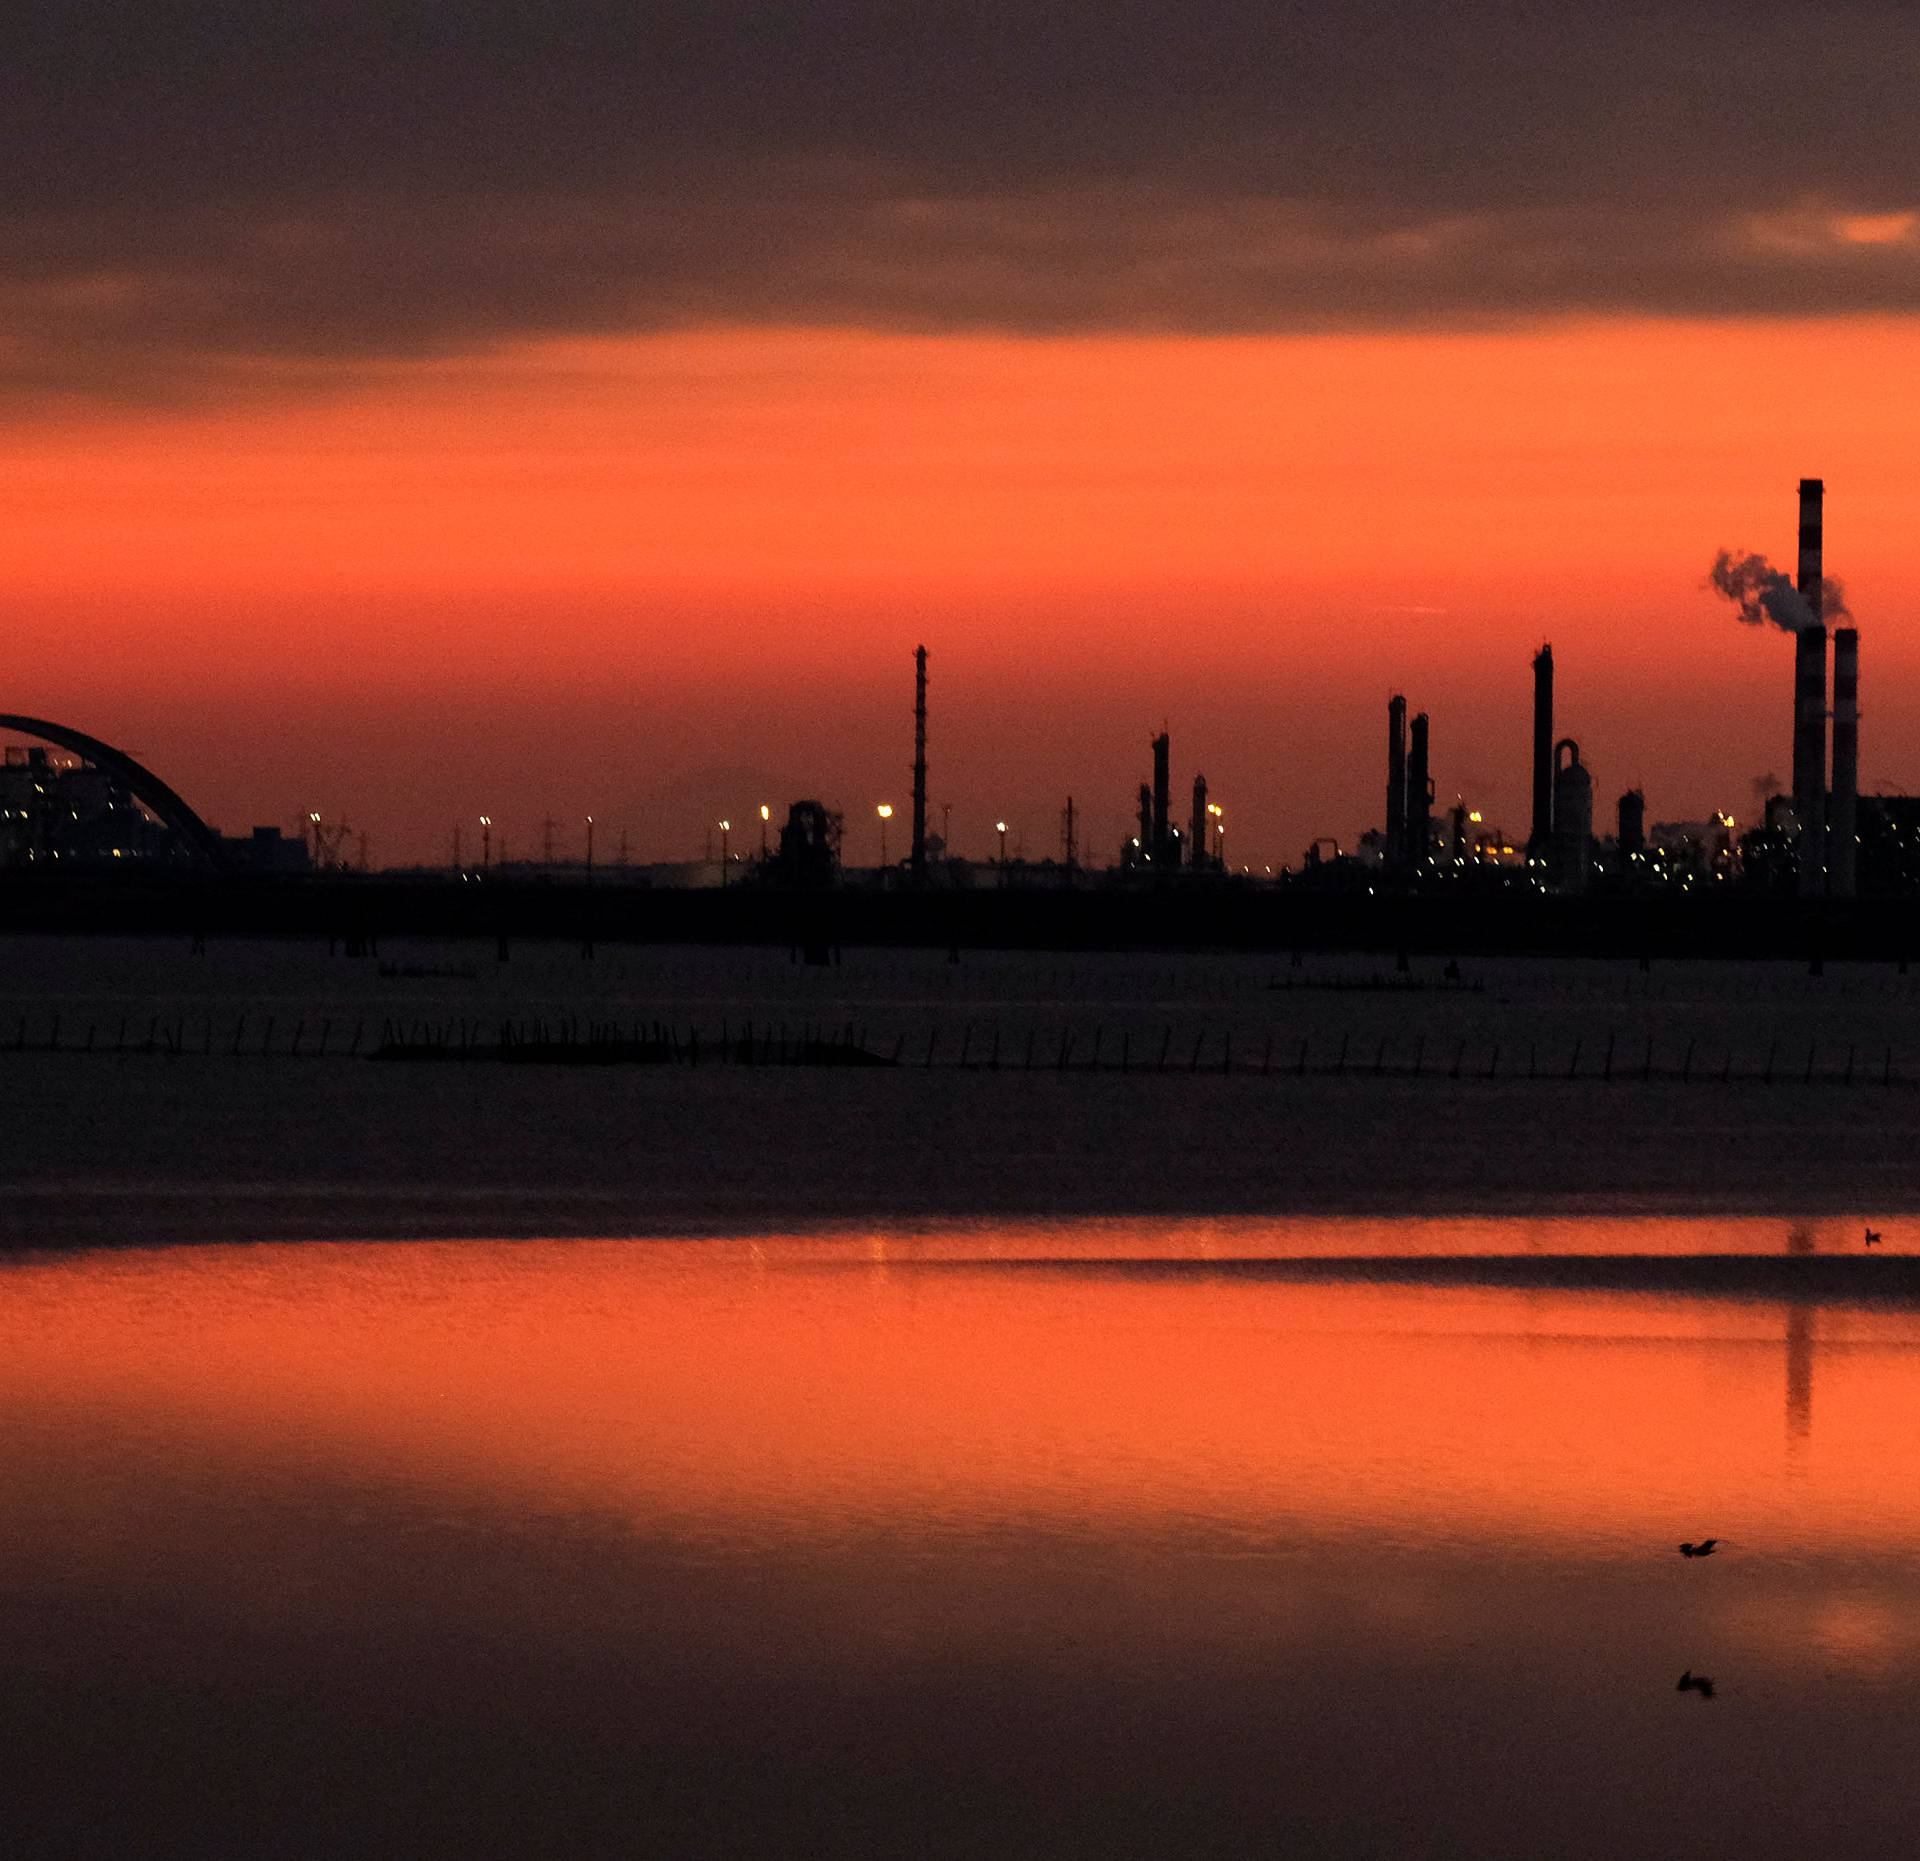 Docks are seen at sunset at the Industrial port of Marghera in the lagoon of Venice